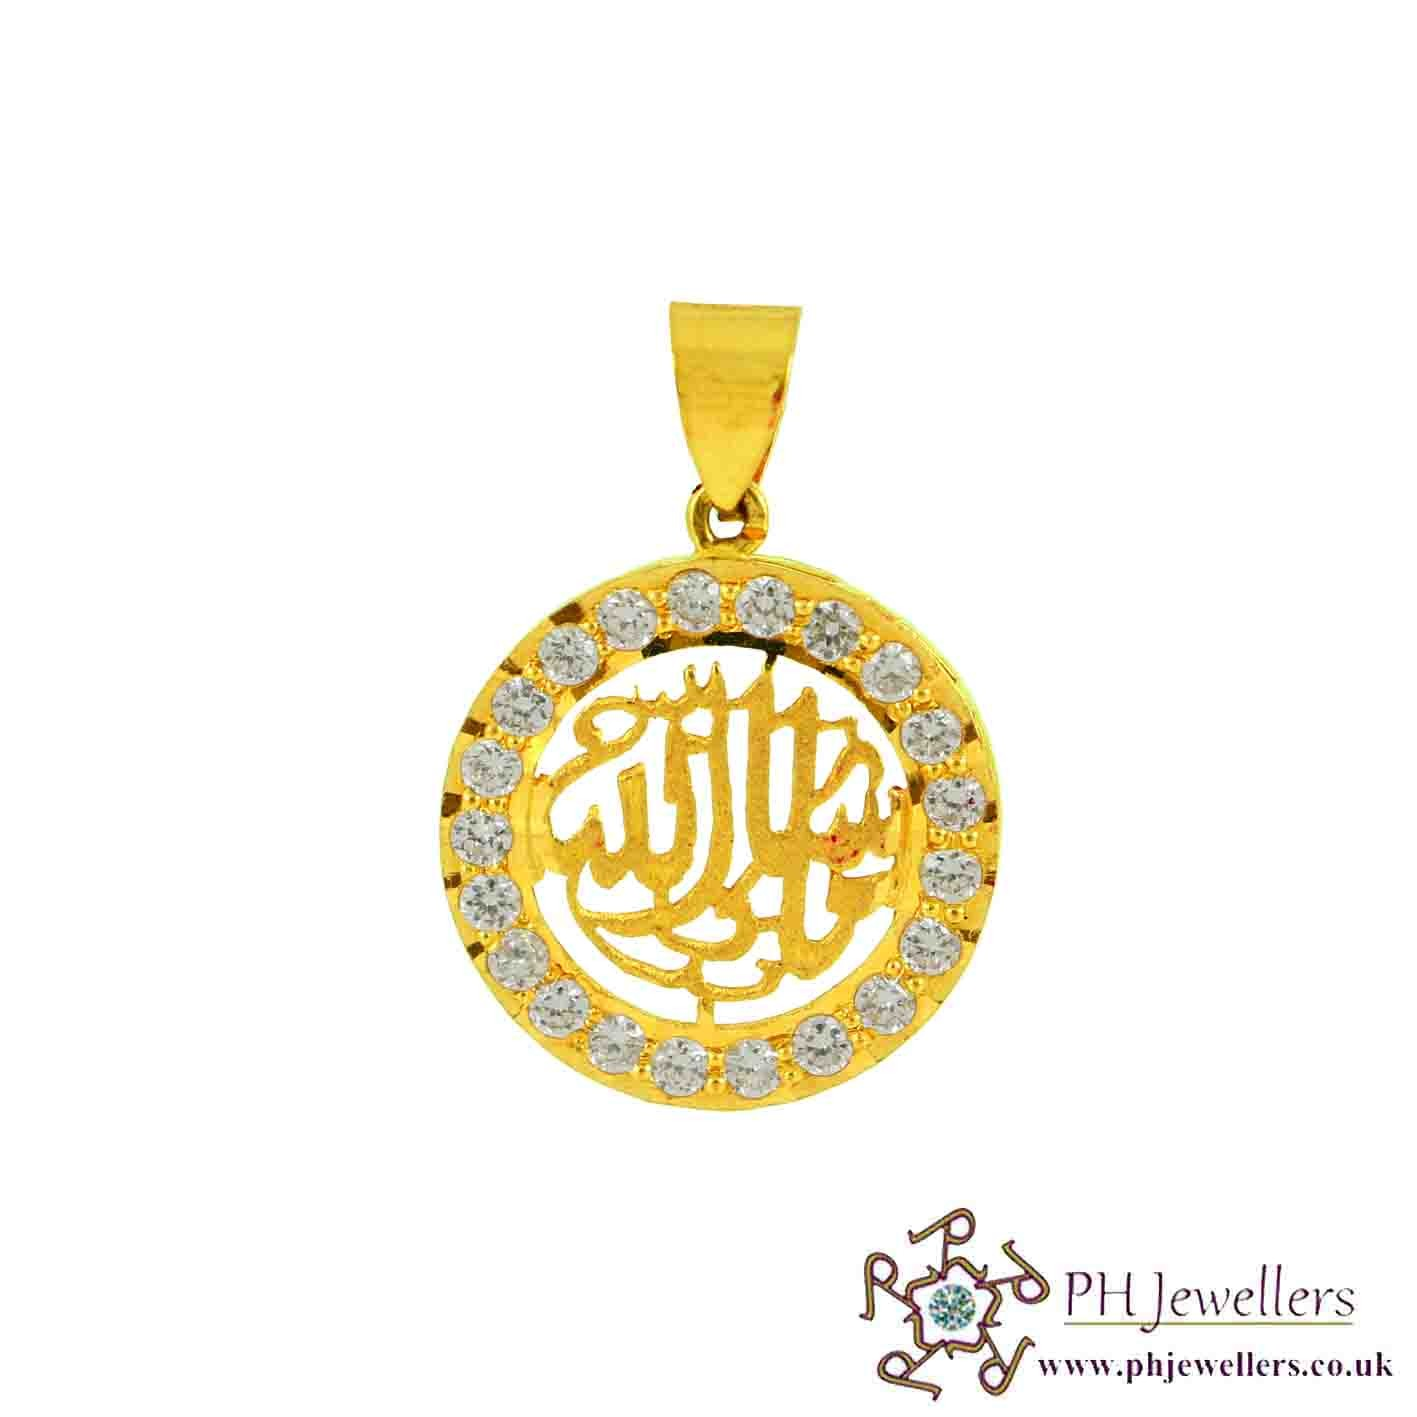 Online gold jewellery gold jewellery 22ct 916 hallmark yellow gold online gold jewellery gold jewellery 22ct 916 hallmark yellow gold pendant allah in round cz fp16 22 carat gold jewellers mozeypictures Choice Image